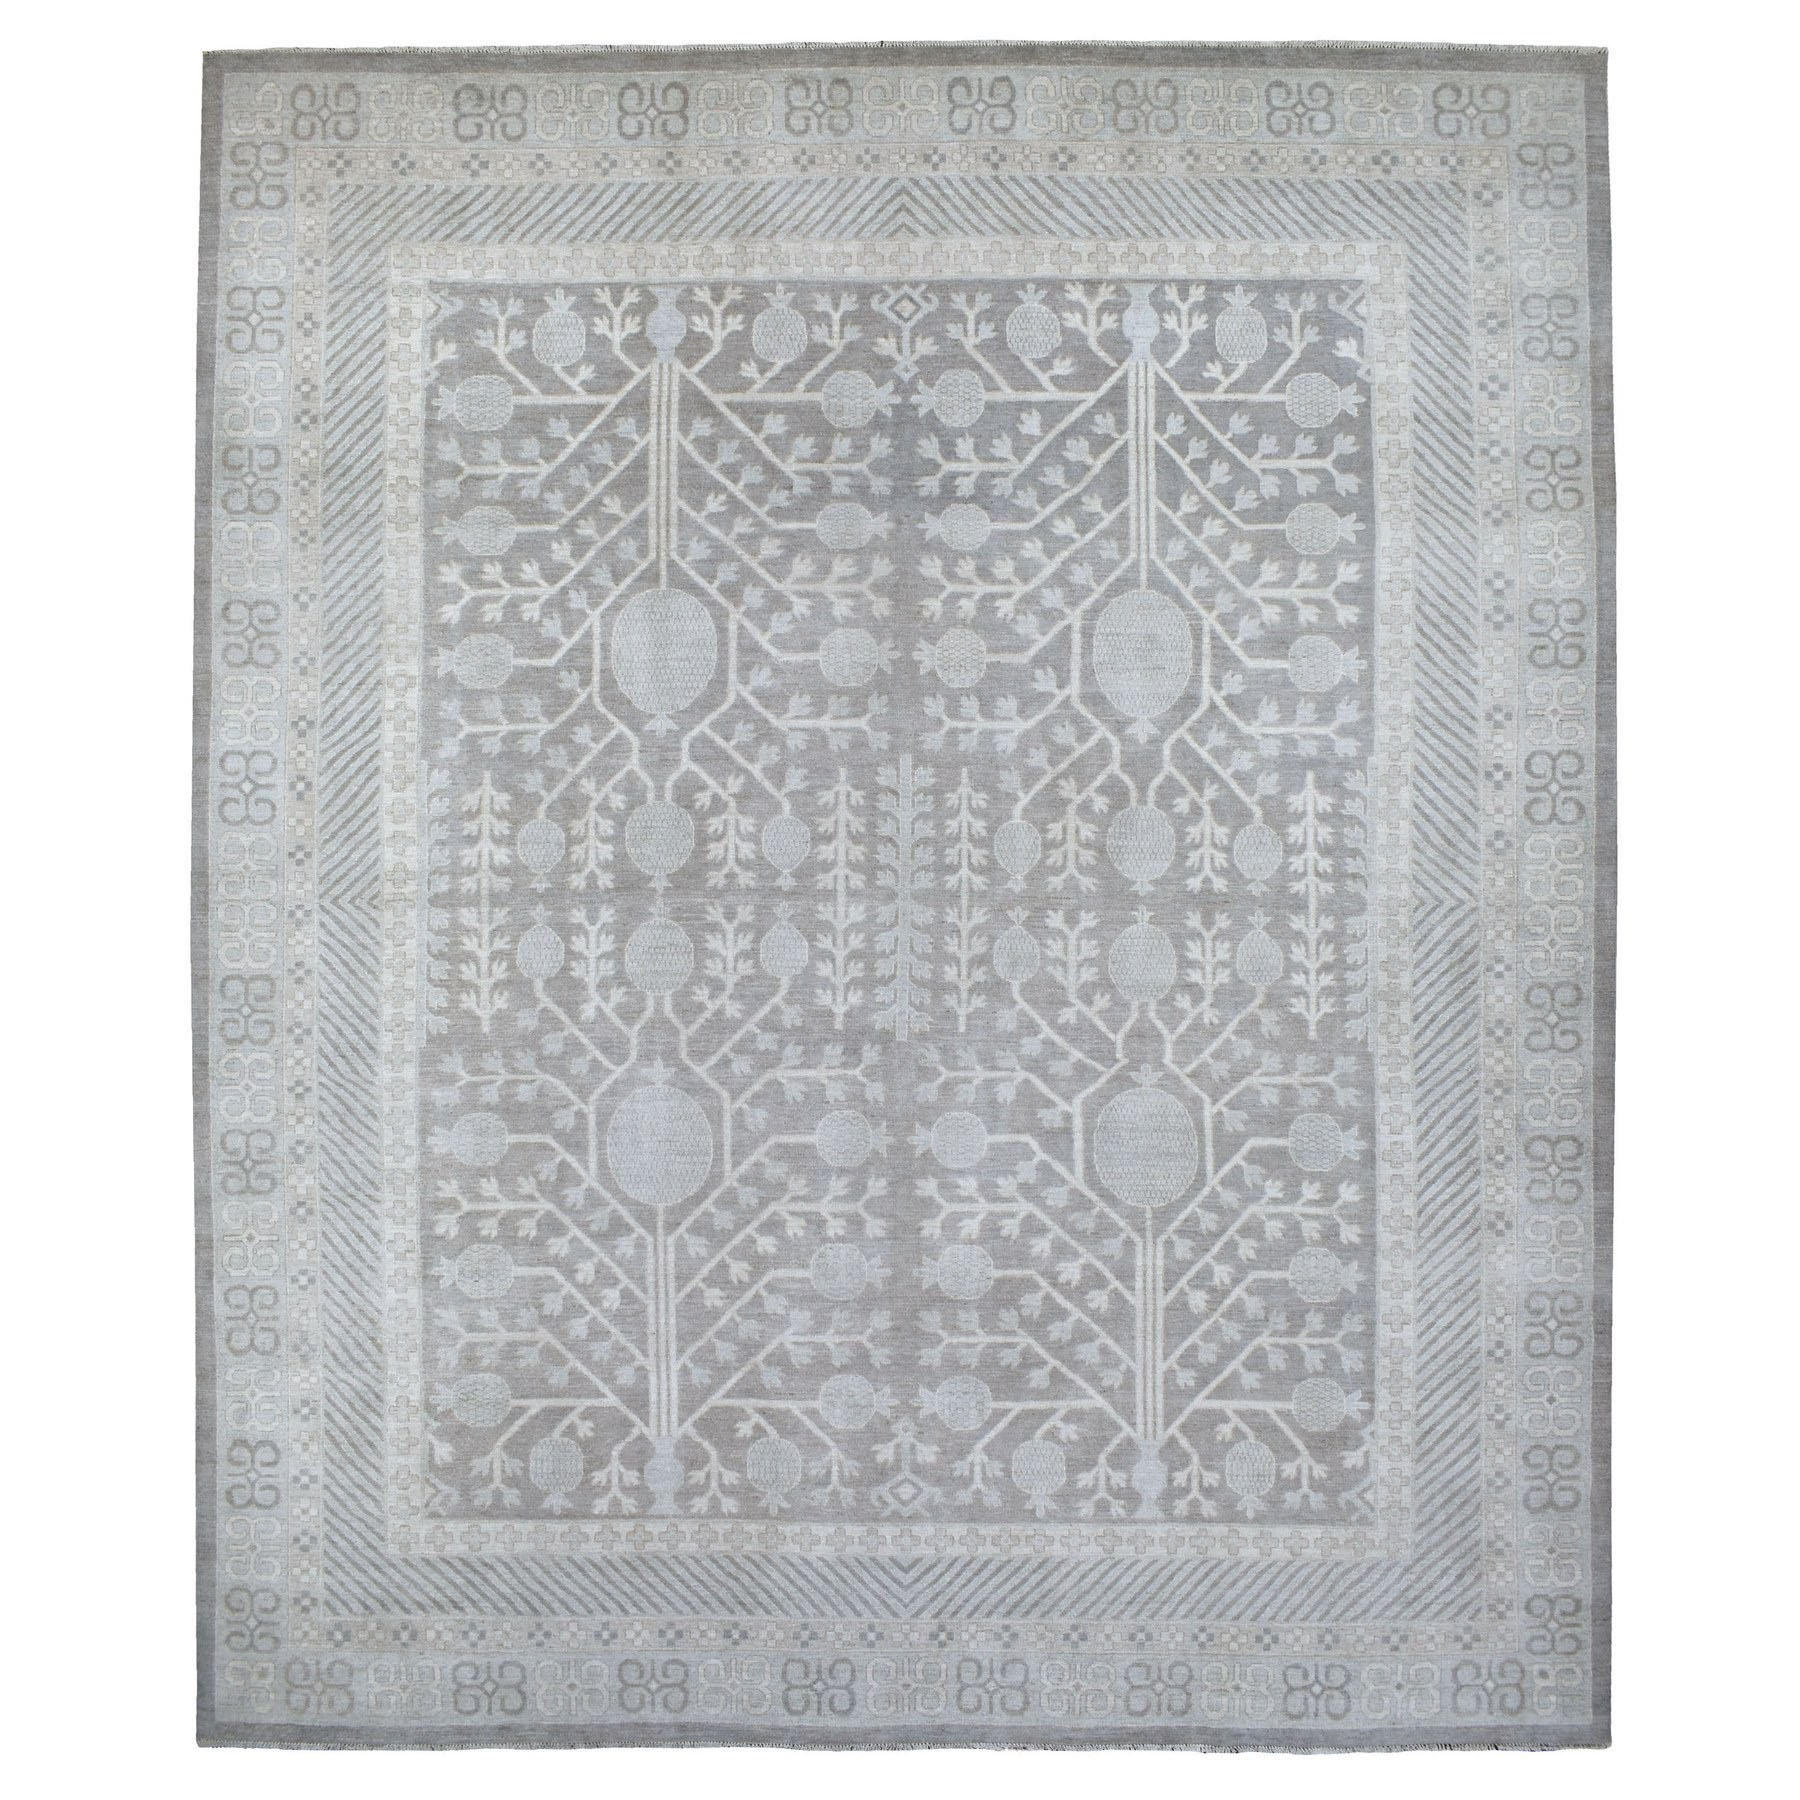 Oushak And Peshawar Rugs LUV608022